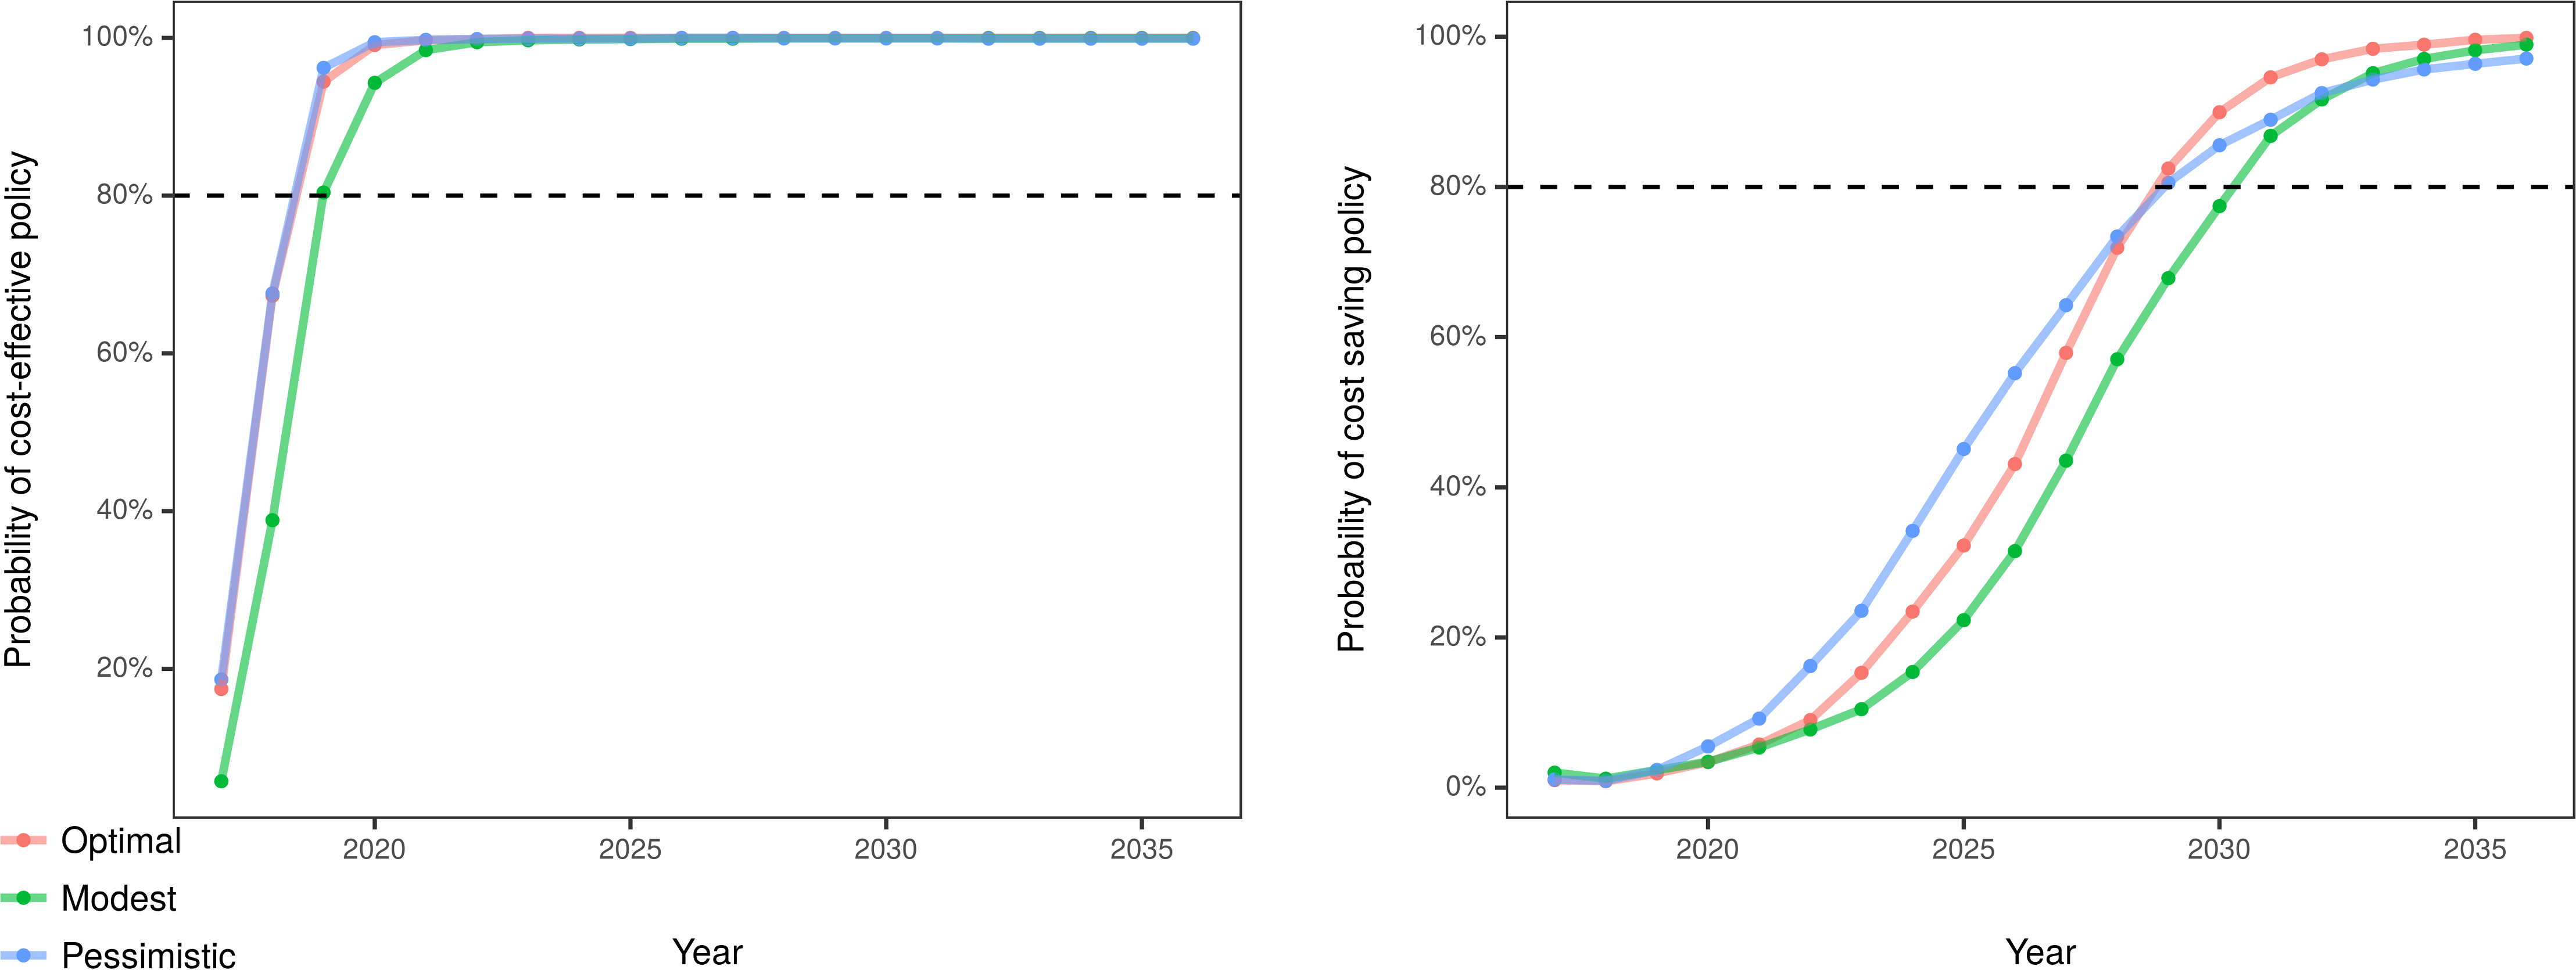 Estimated probability of cost-effective and cost-saving policy over the 20-year simulated period.